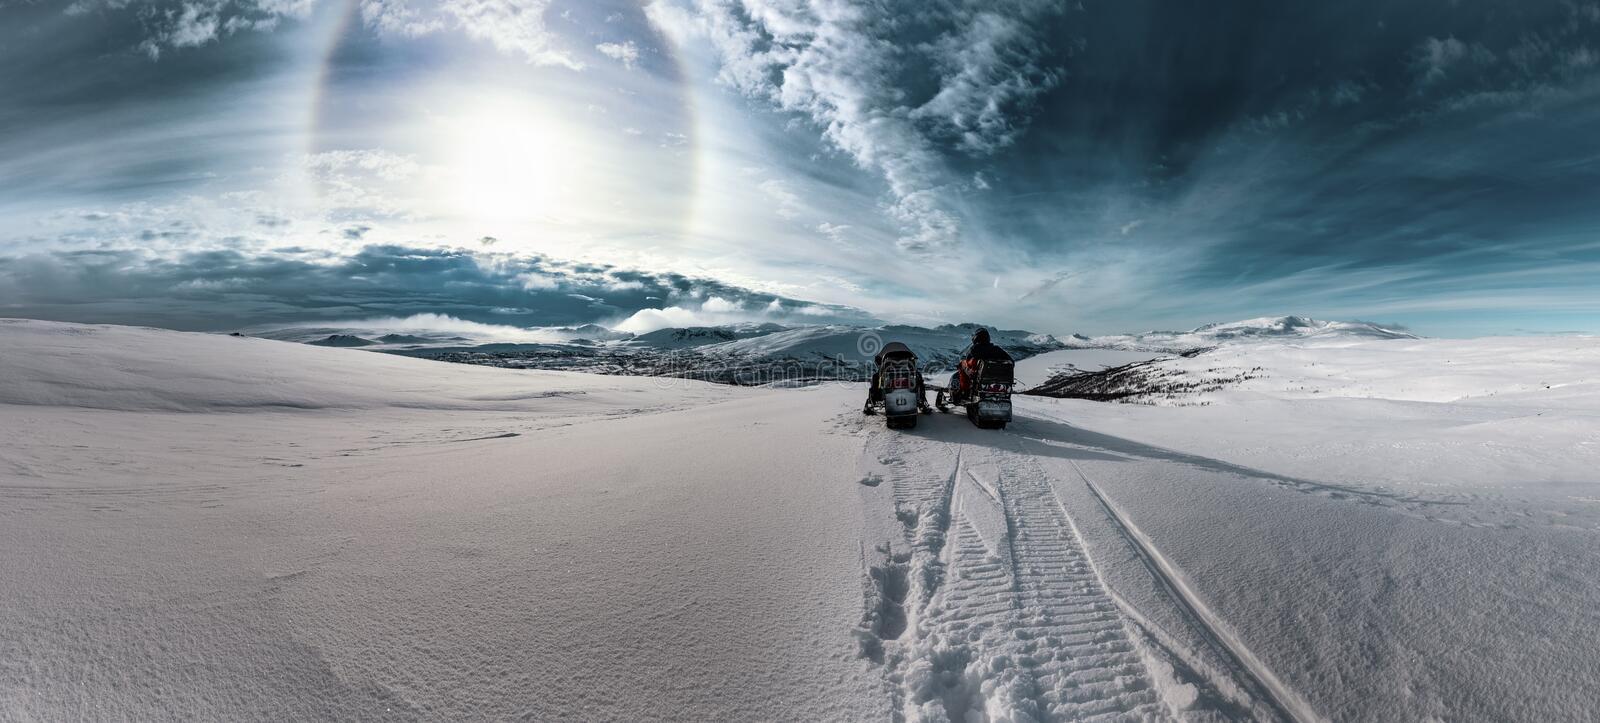 Two snowmobiles with one driver stand in front of dramatic scenic view at cold snowy Norwegian Mountains, Sun halo shines on cold royalty free stock images